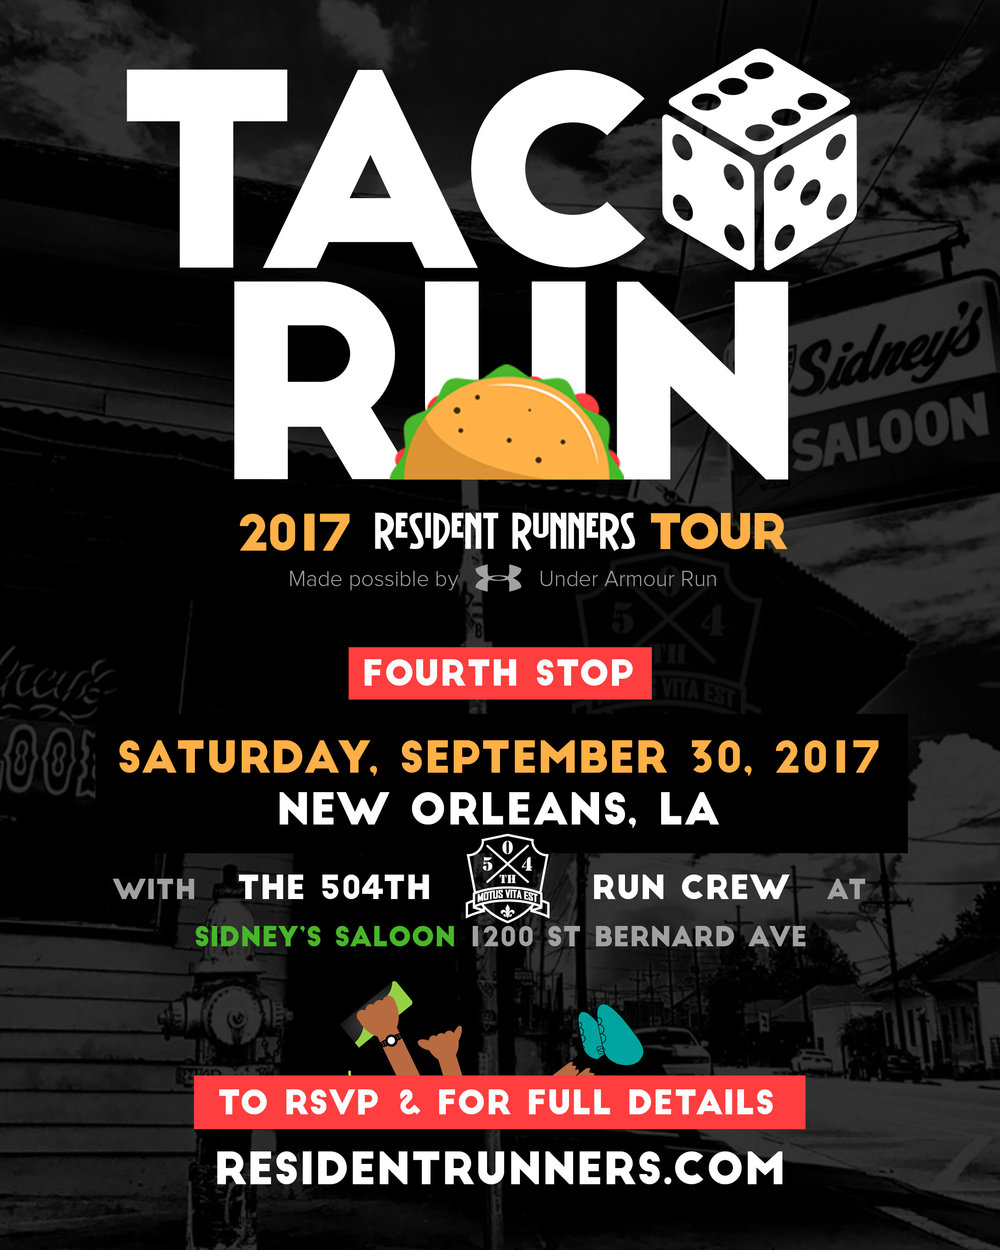 NOLA_taco_run_tour_flyer_v1.jpg